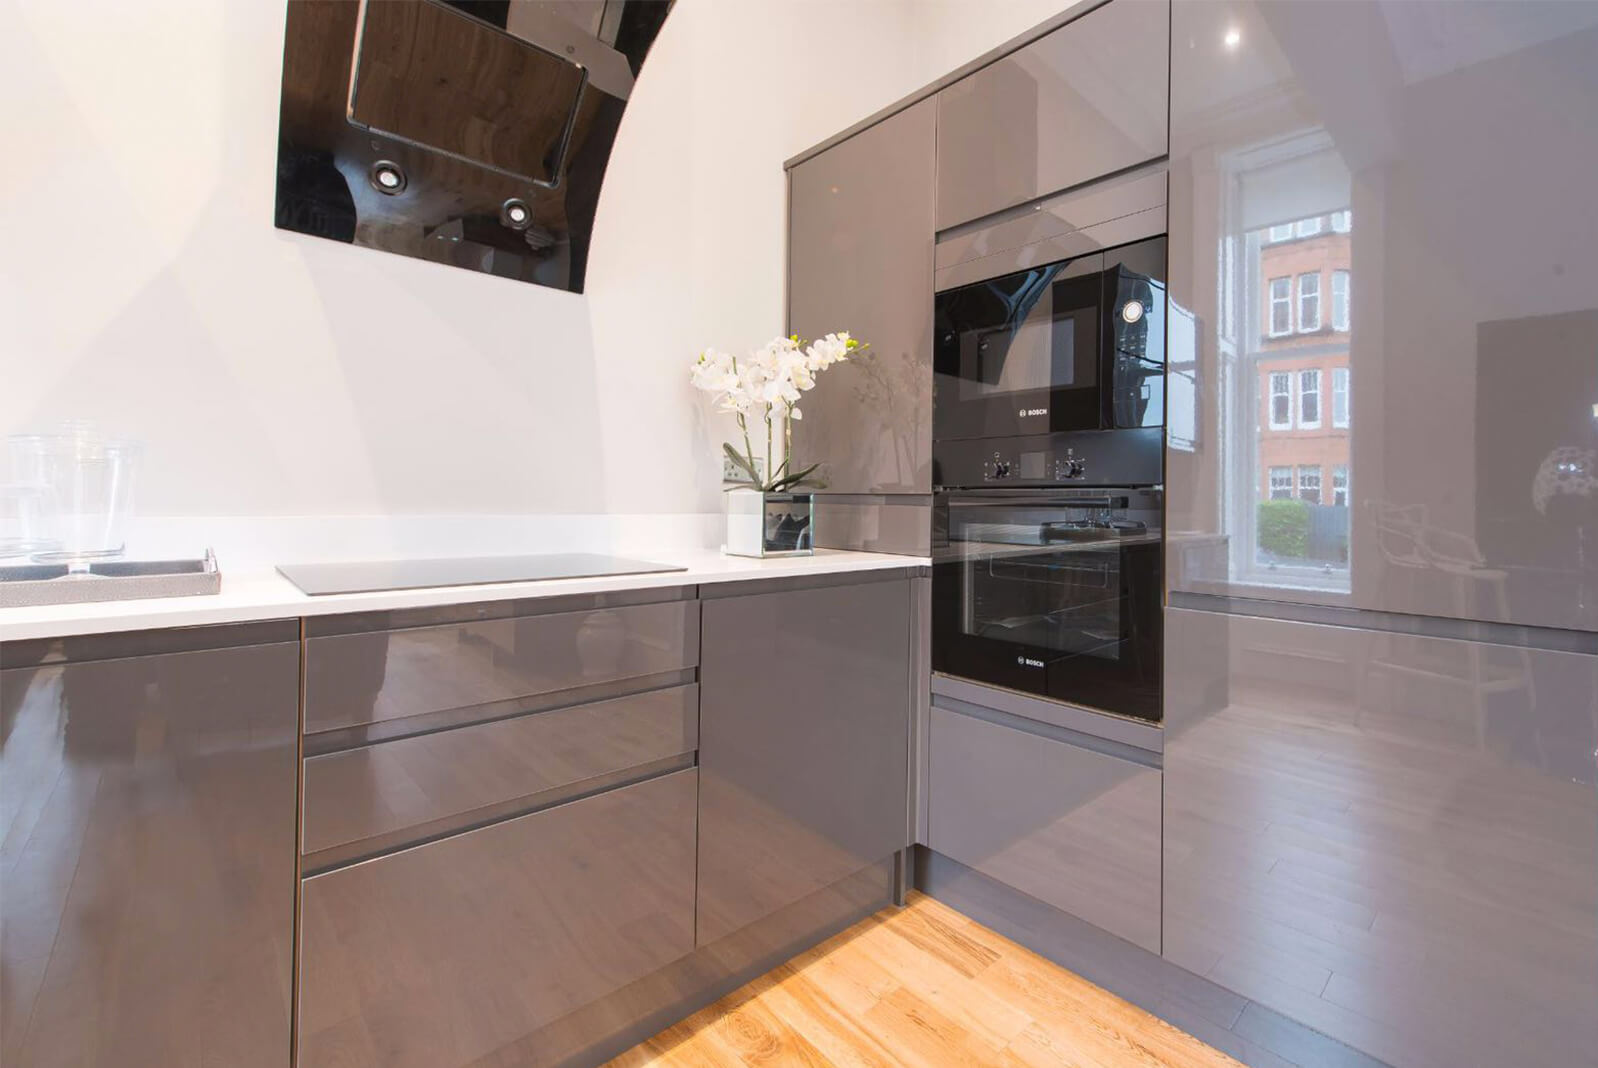 Grey kitchen units with integrated Bosch oven and microwave. Ceramic hob and modern extractor fan.